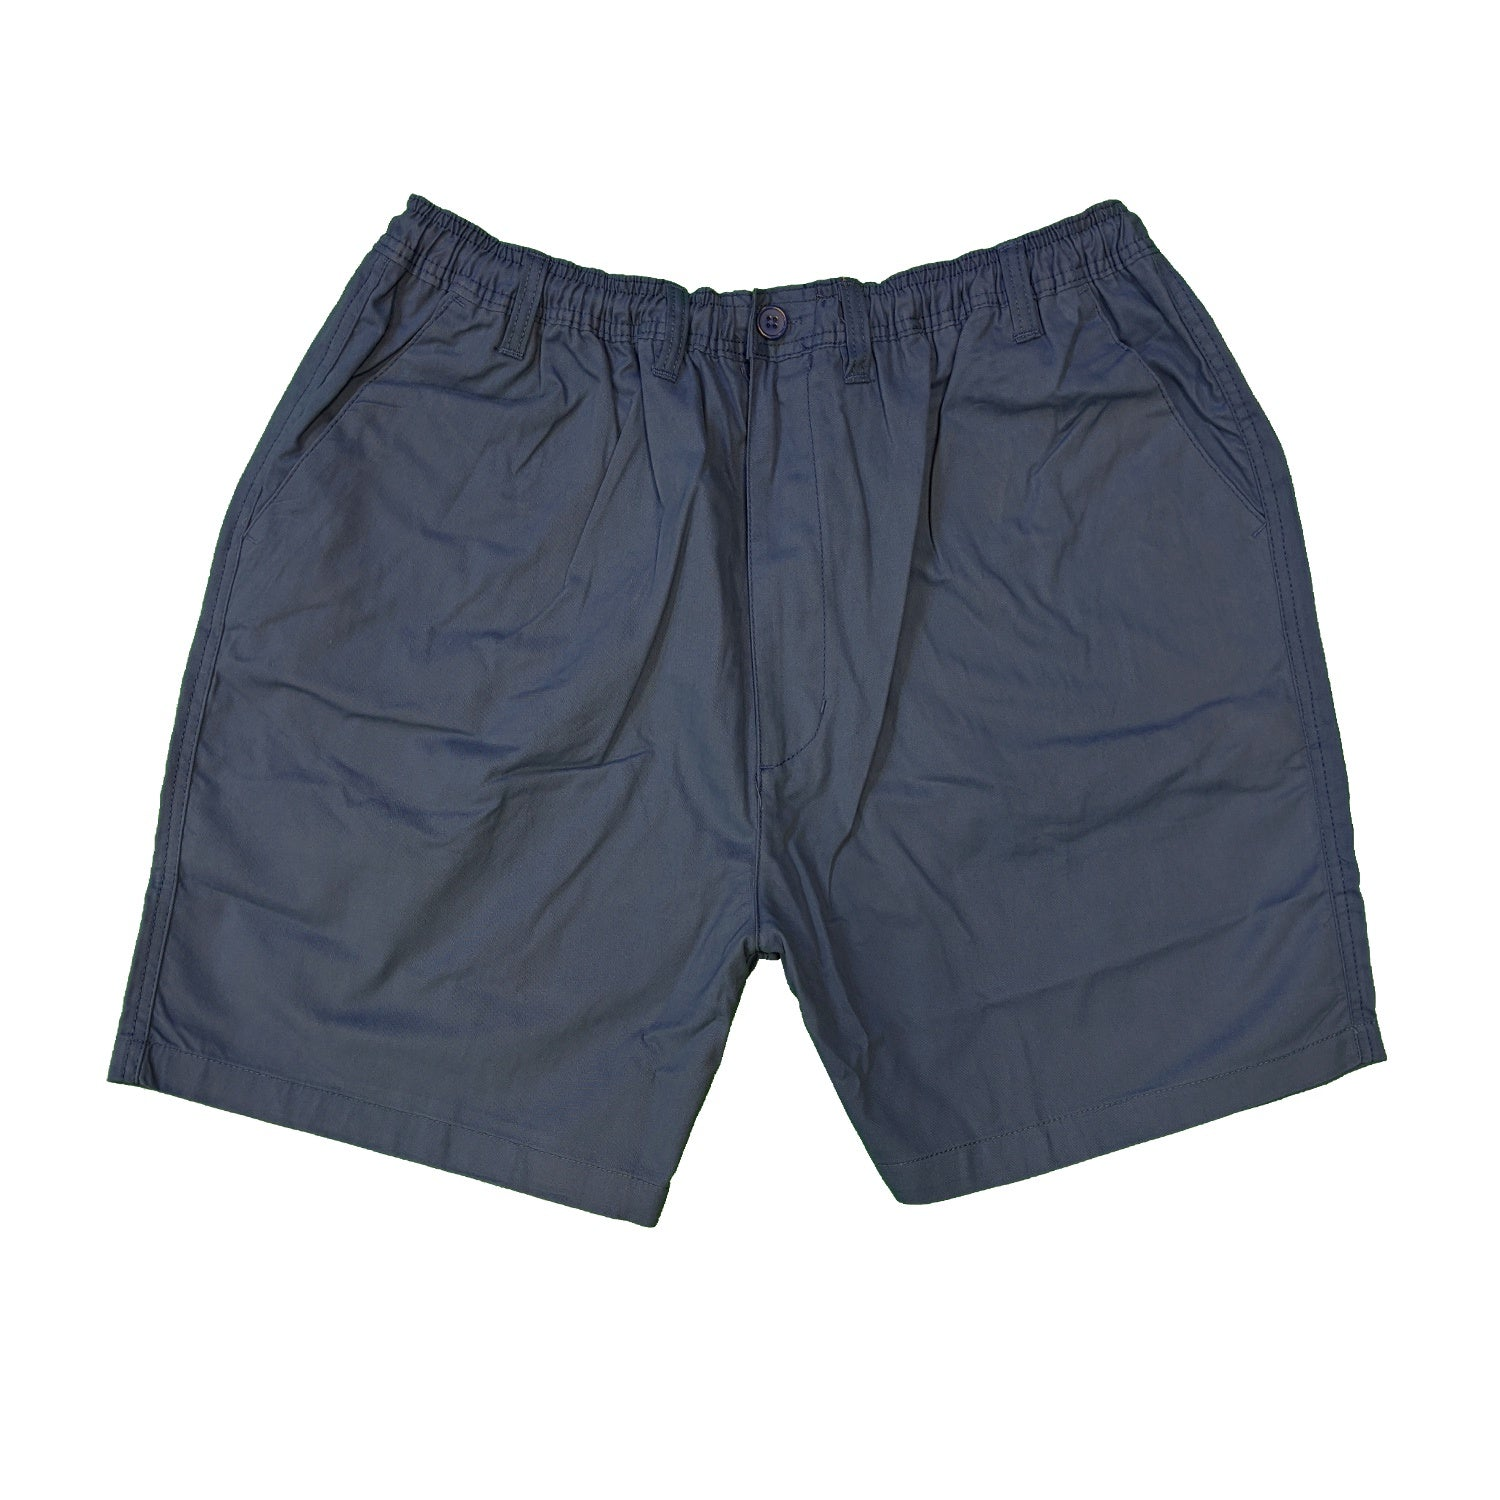 Espionage Rugby Shorts - ST019 - New Blue 1